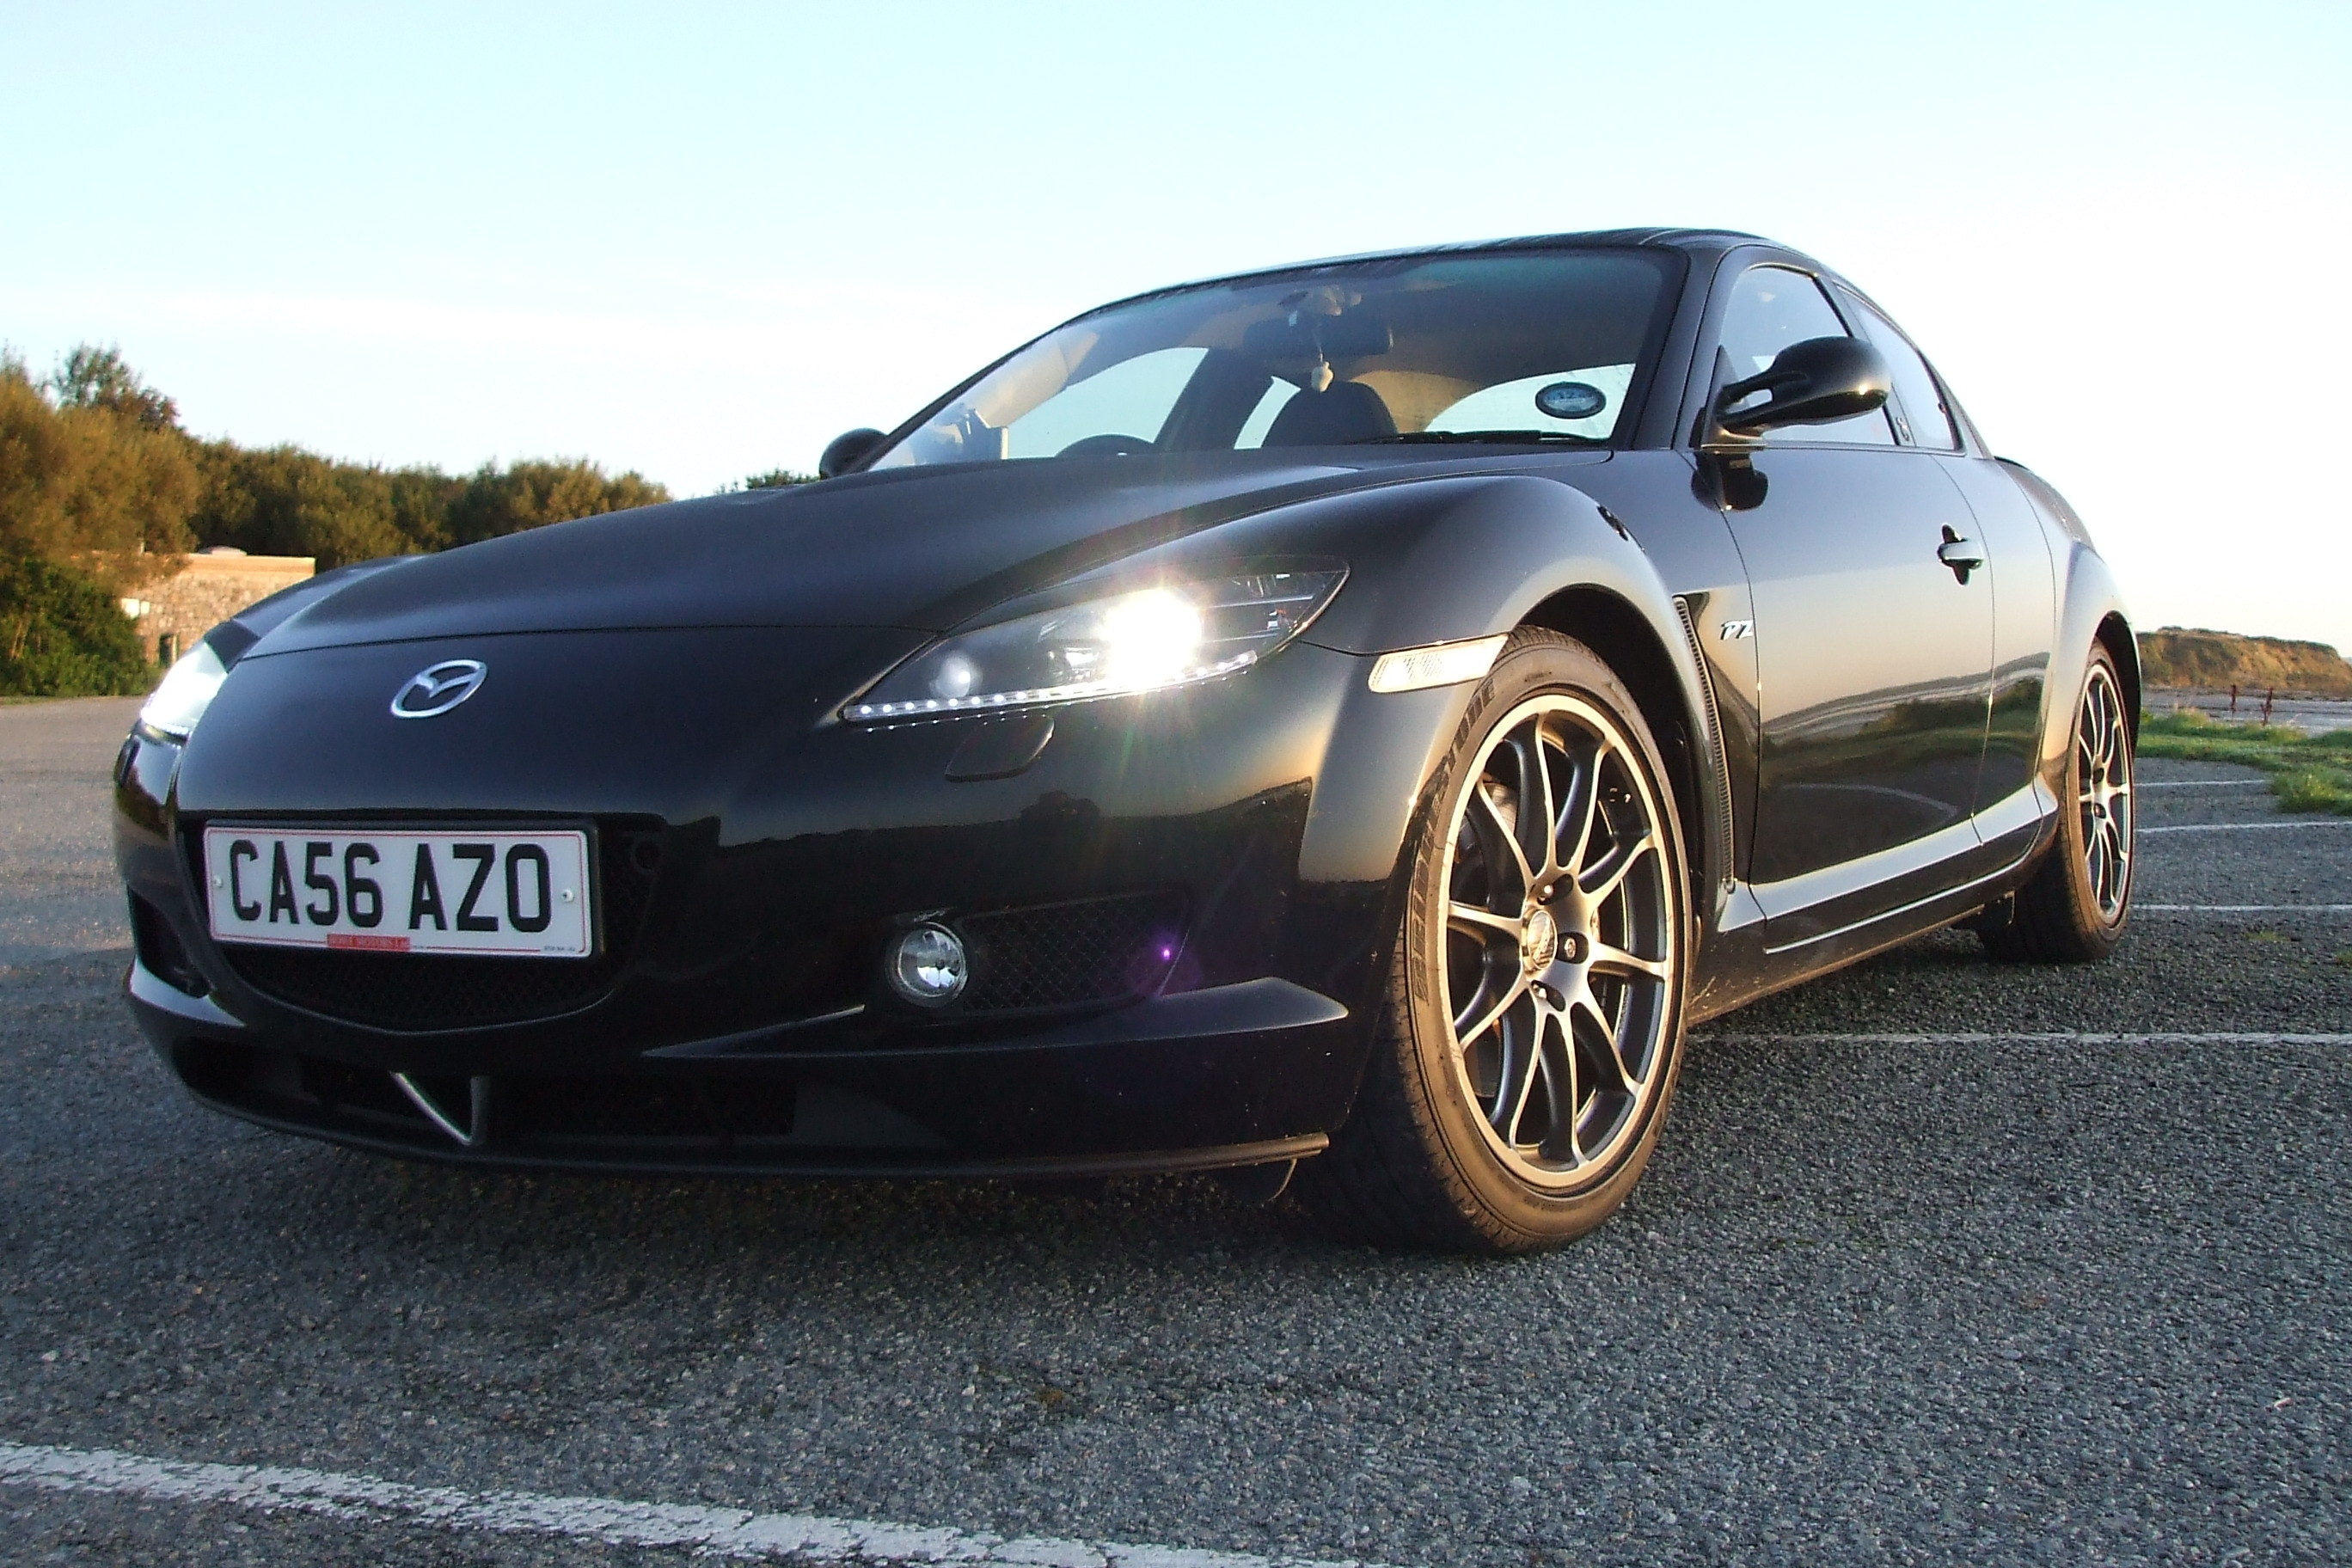 dino1now 39 s 2006 mazda rx 8 in holyhead. Black Bedroom Furniture Sets. Home Design Ideas